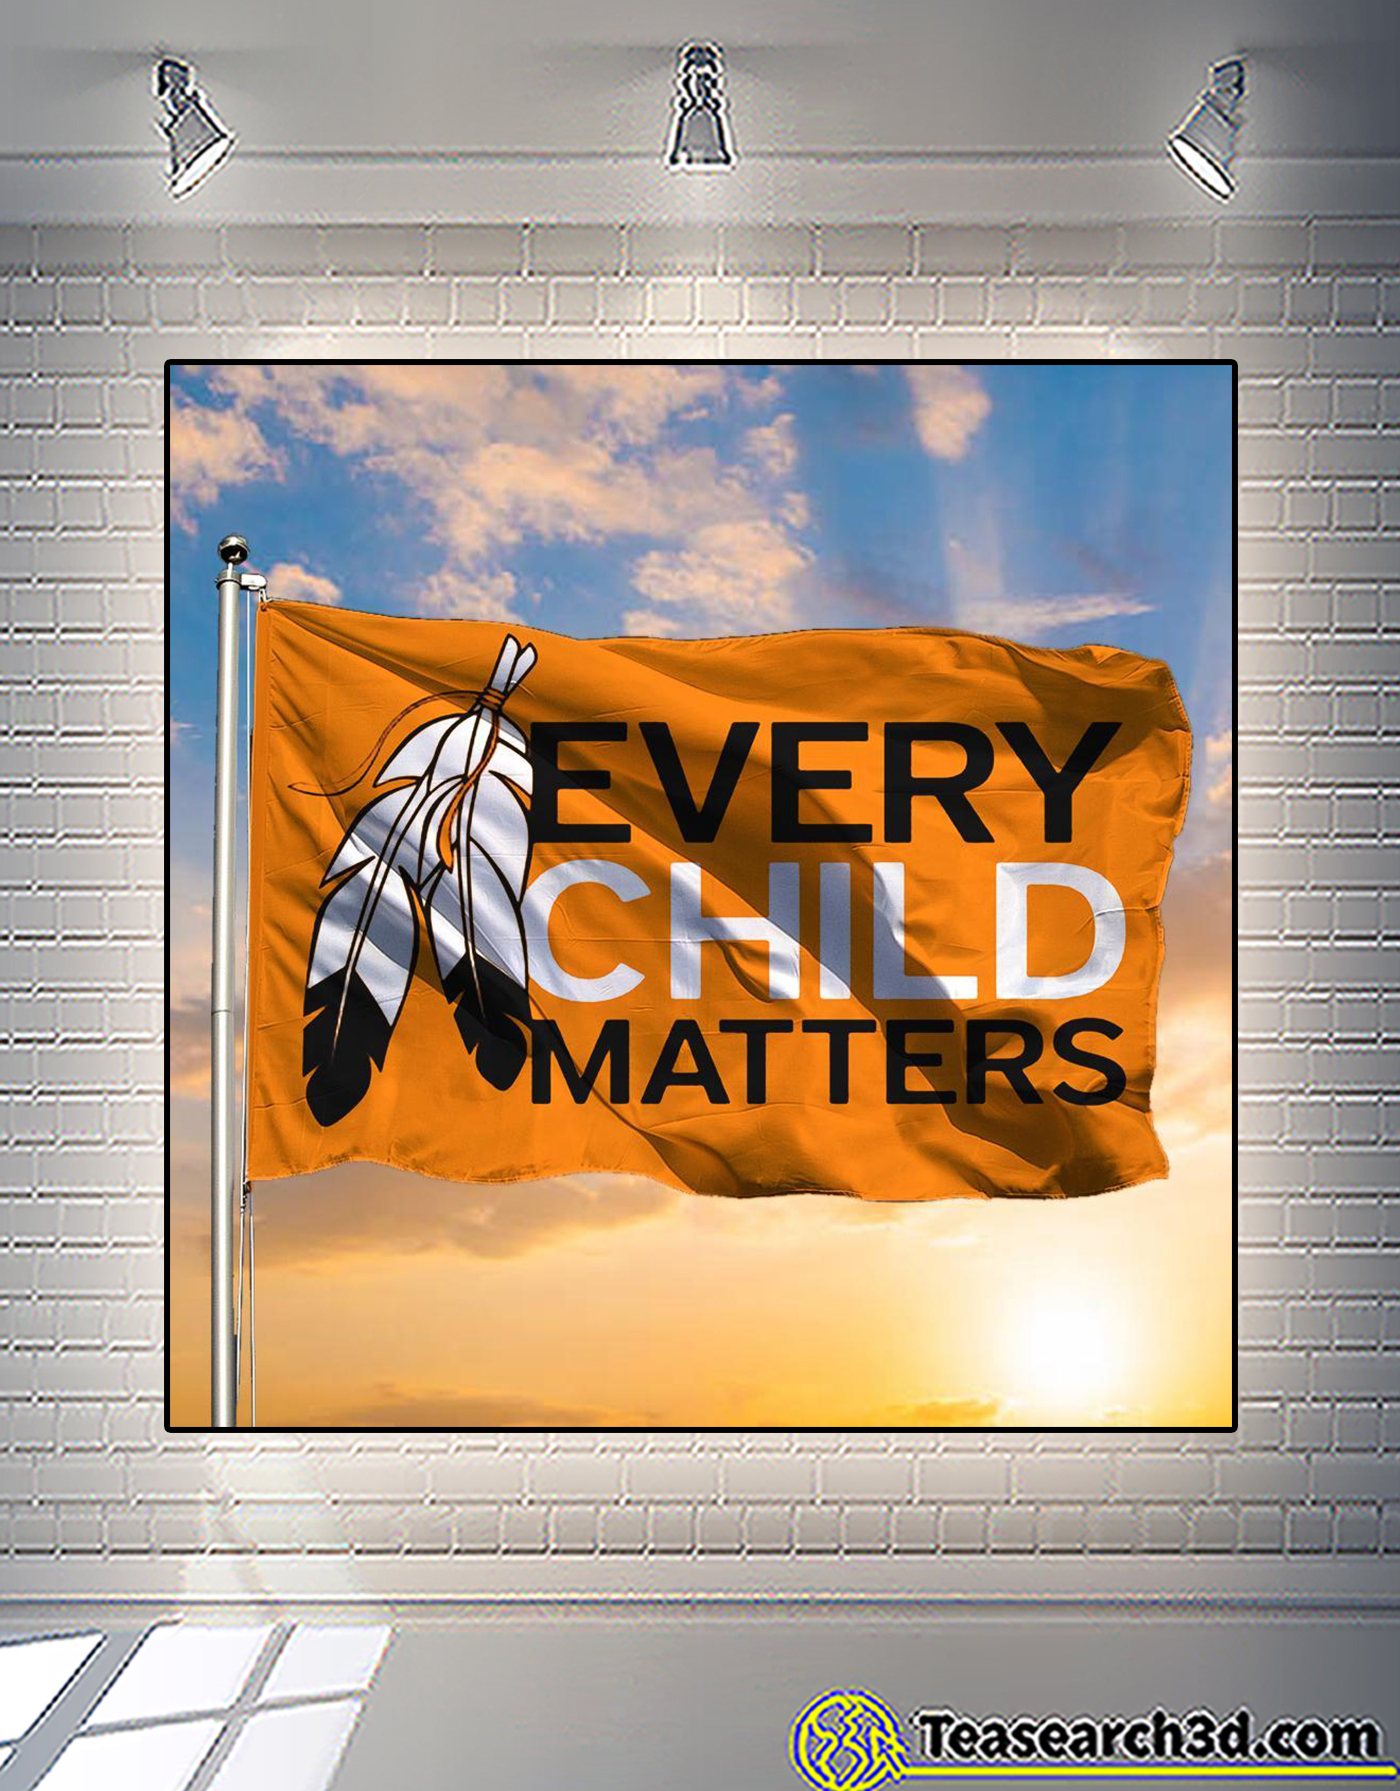 Every child matters first nation flag